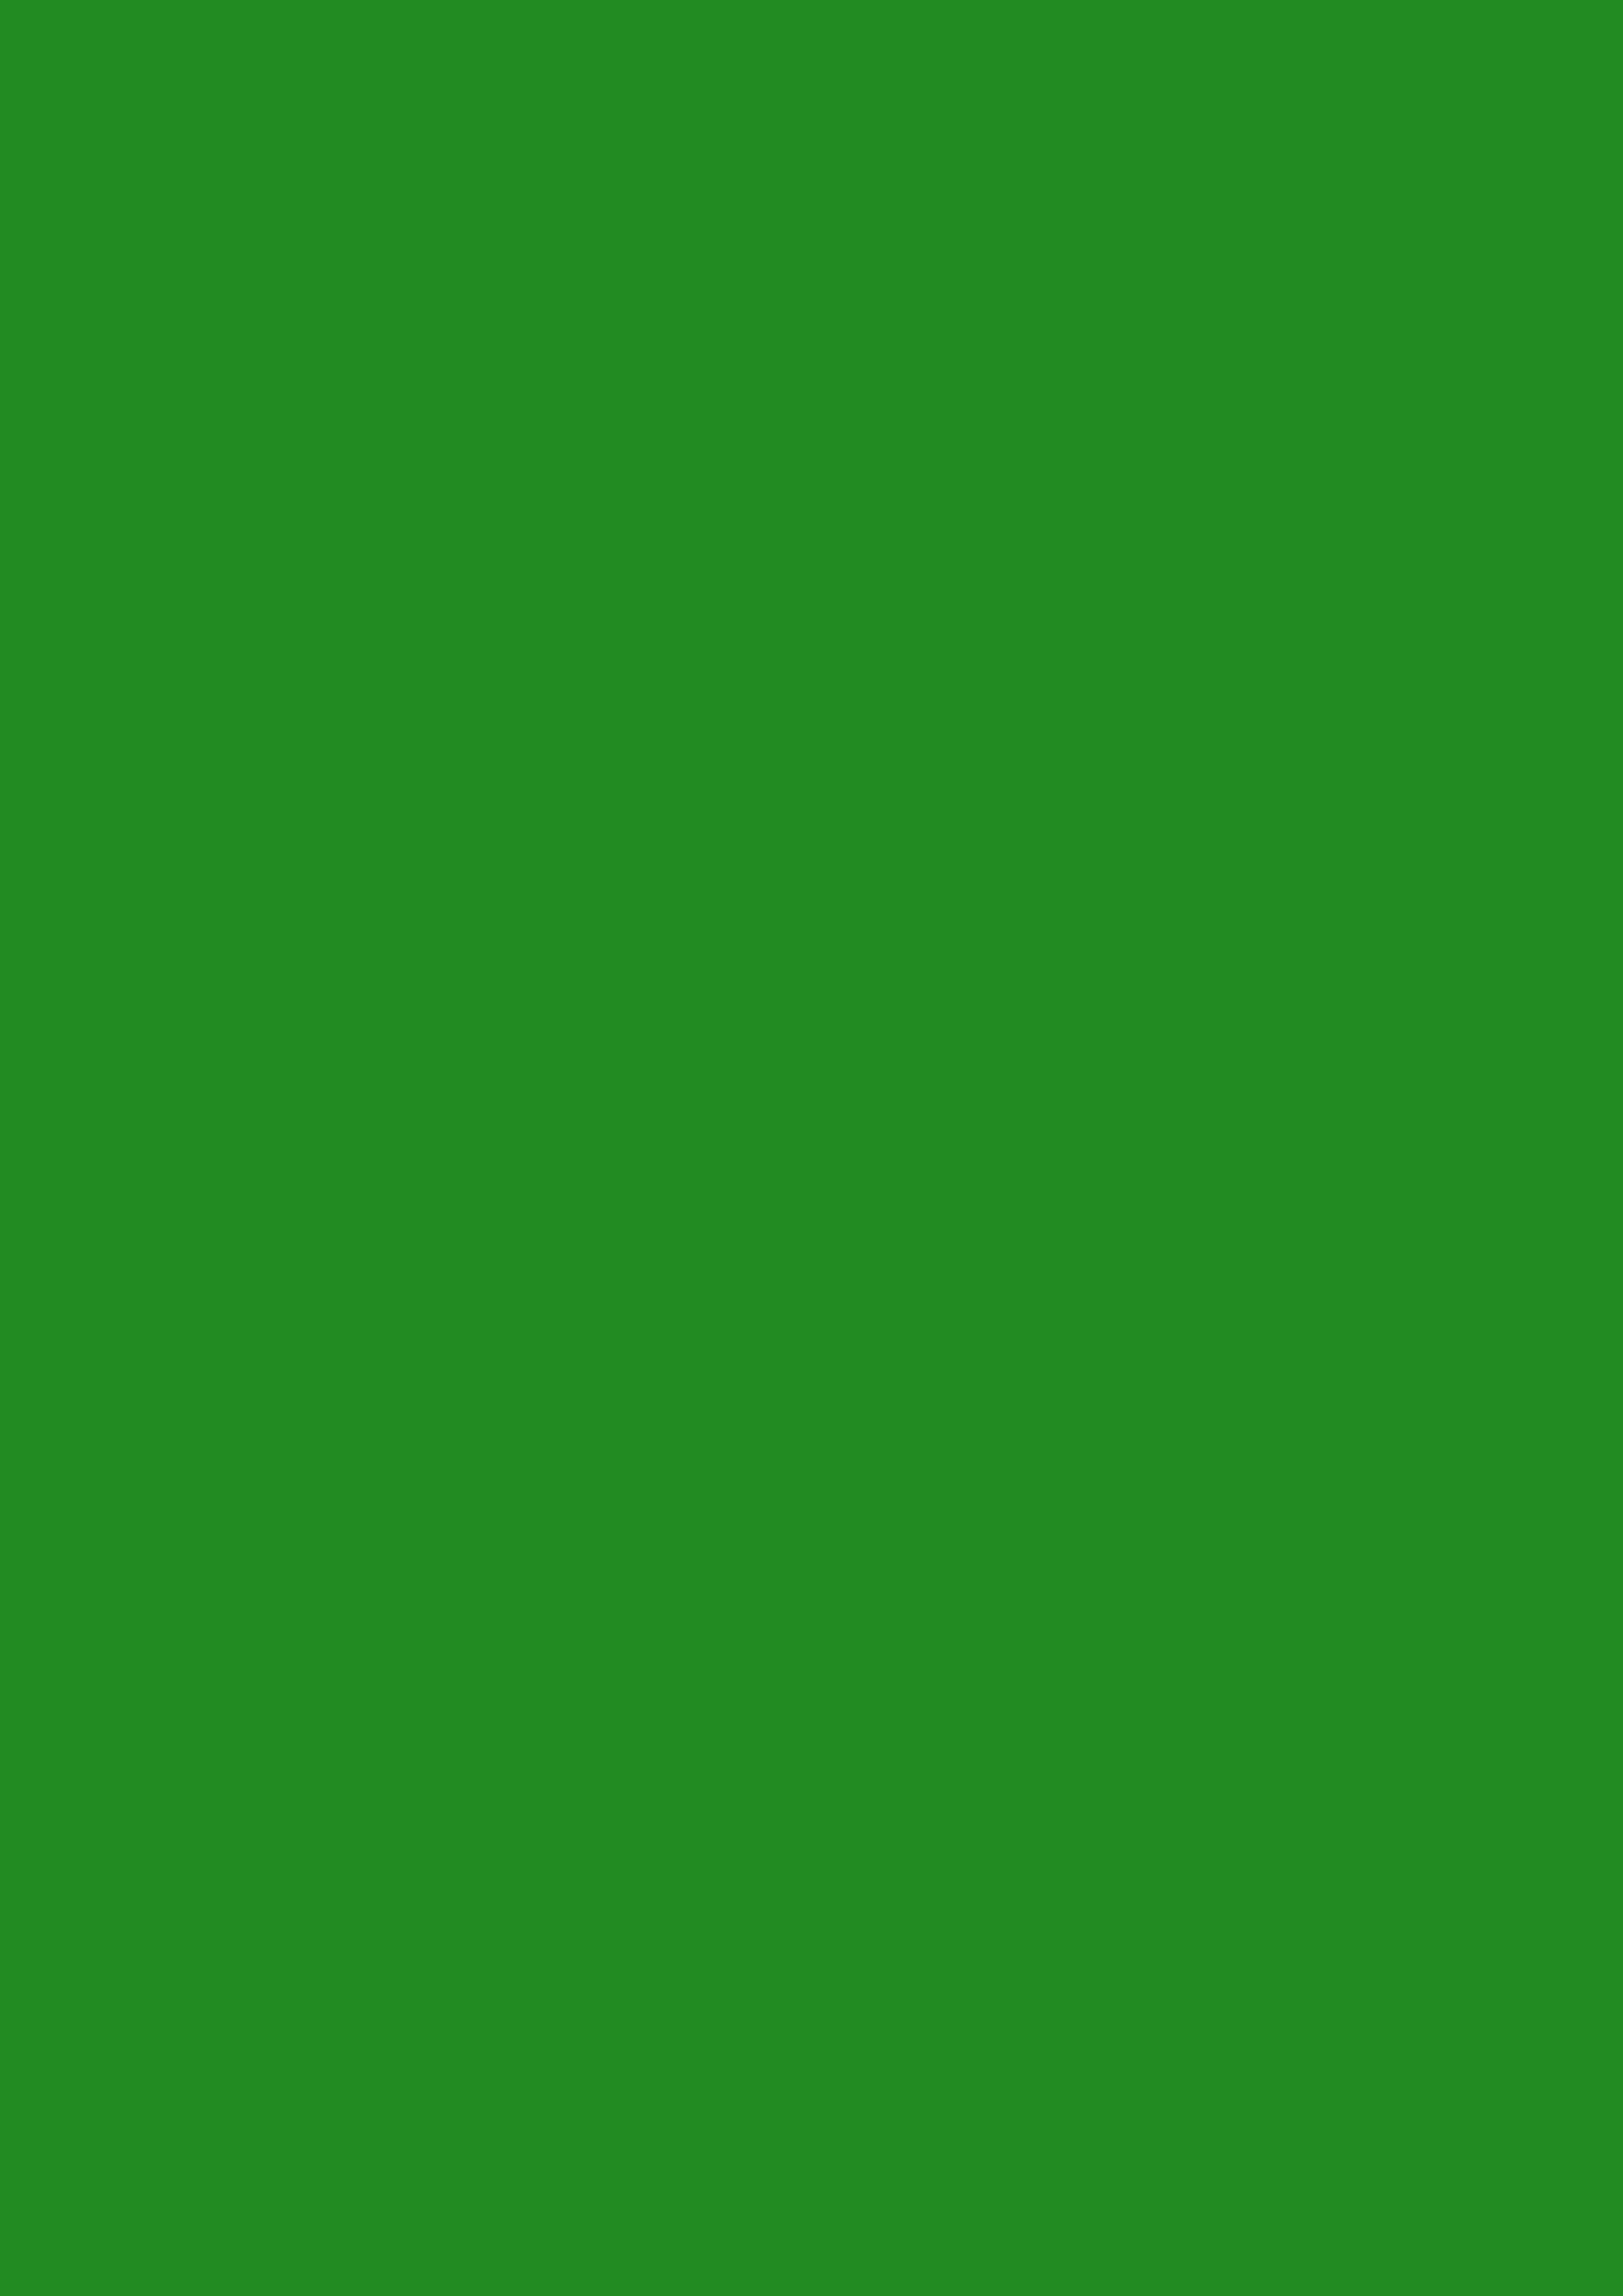 2480x3508 Forest Green For Web Solid Color Background